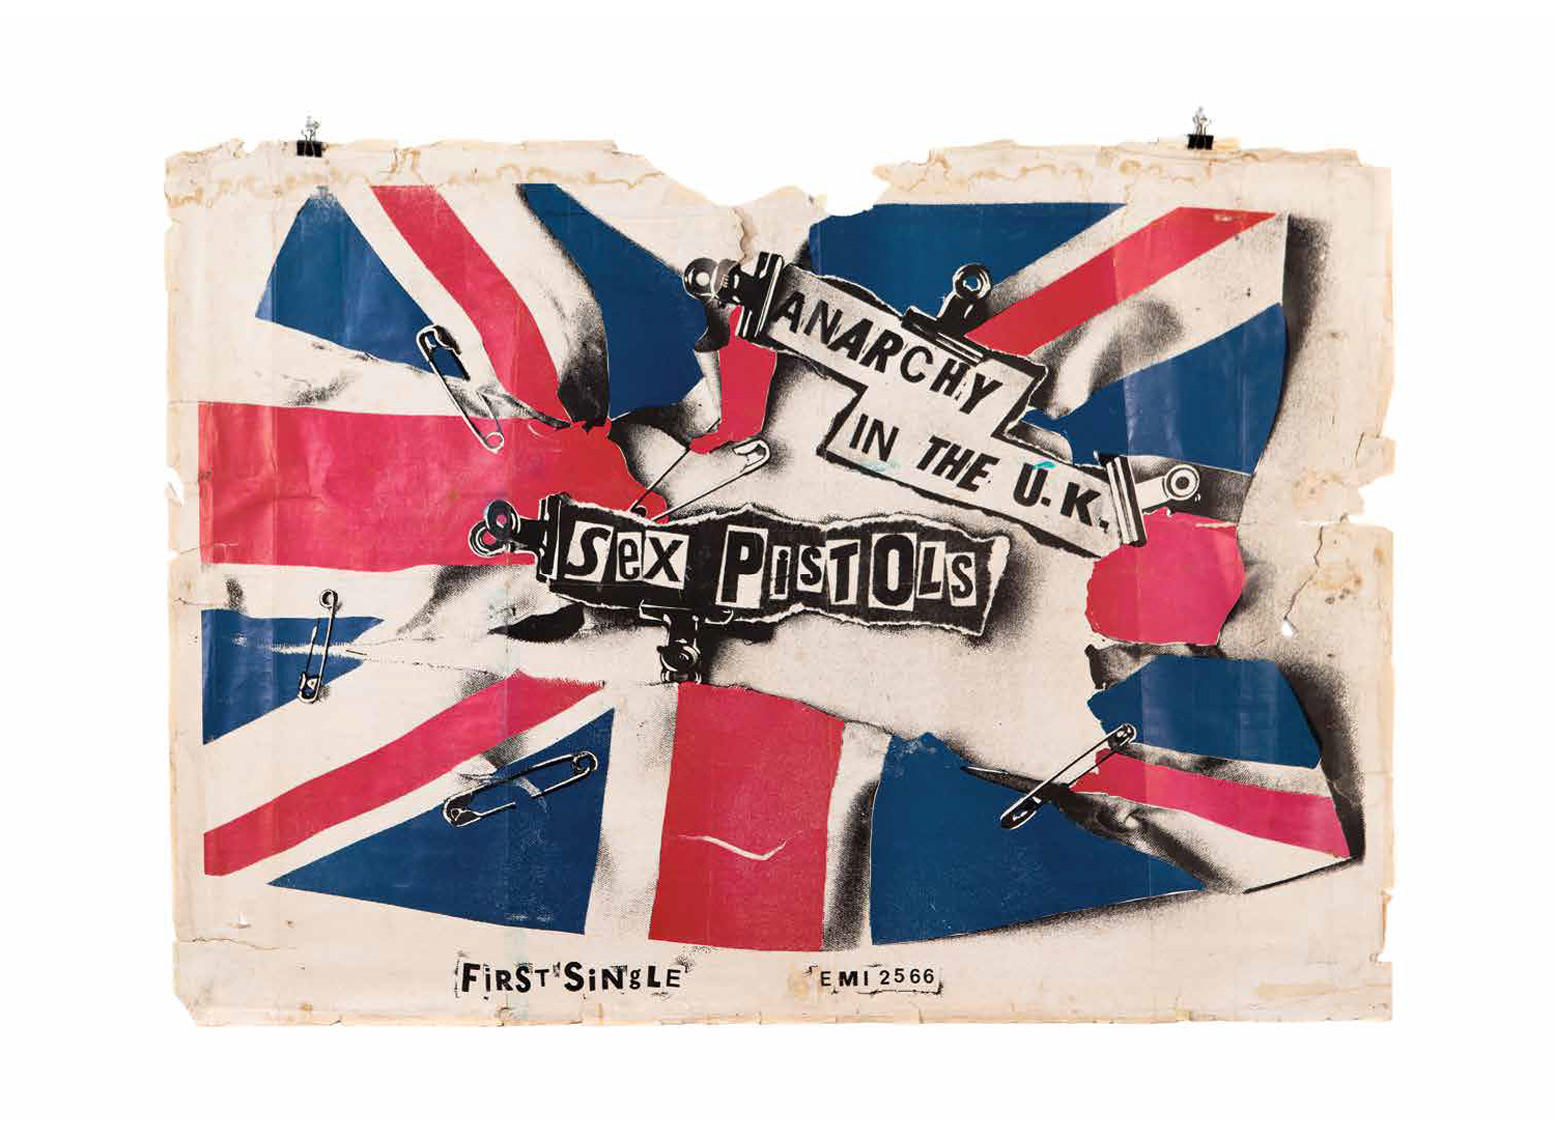 Sex Pistols, Anarchy in the UK Poster